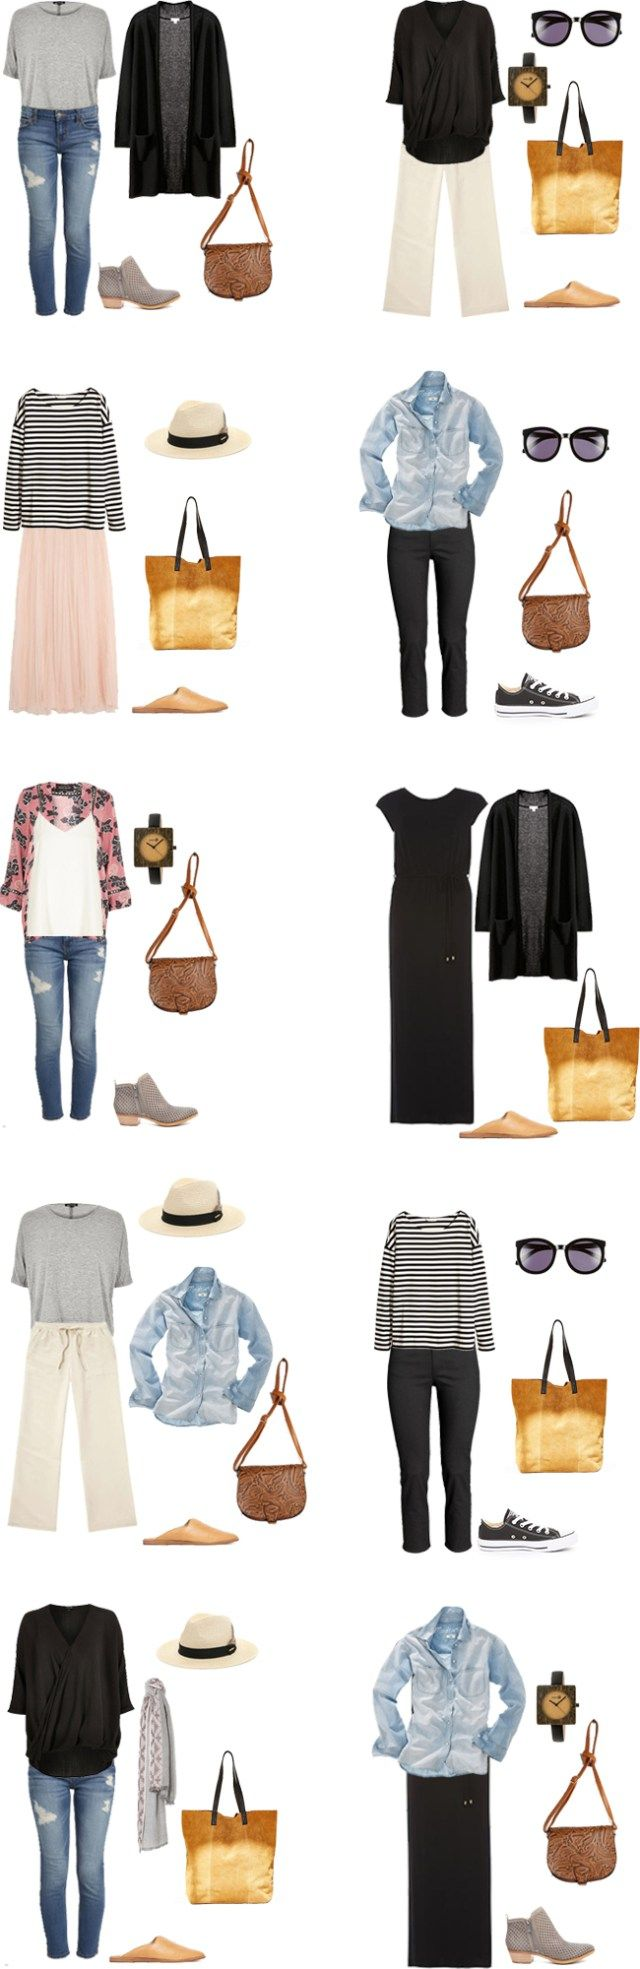 What to Wear in New Orleans Outfits 11-20 #travellight #packinglight #travel #traveltips